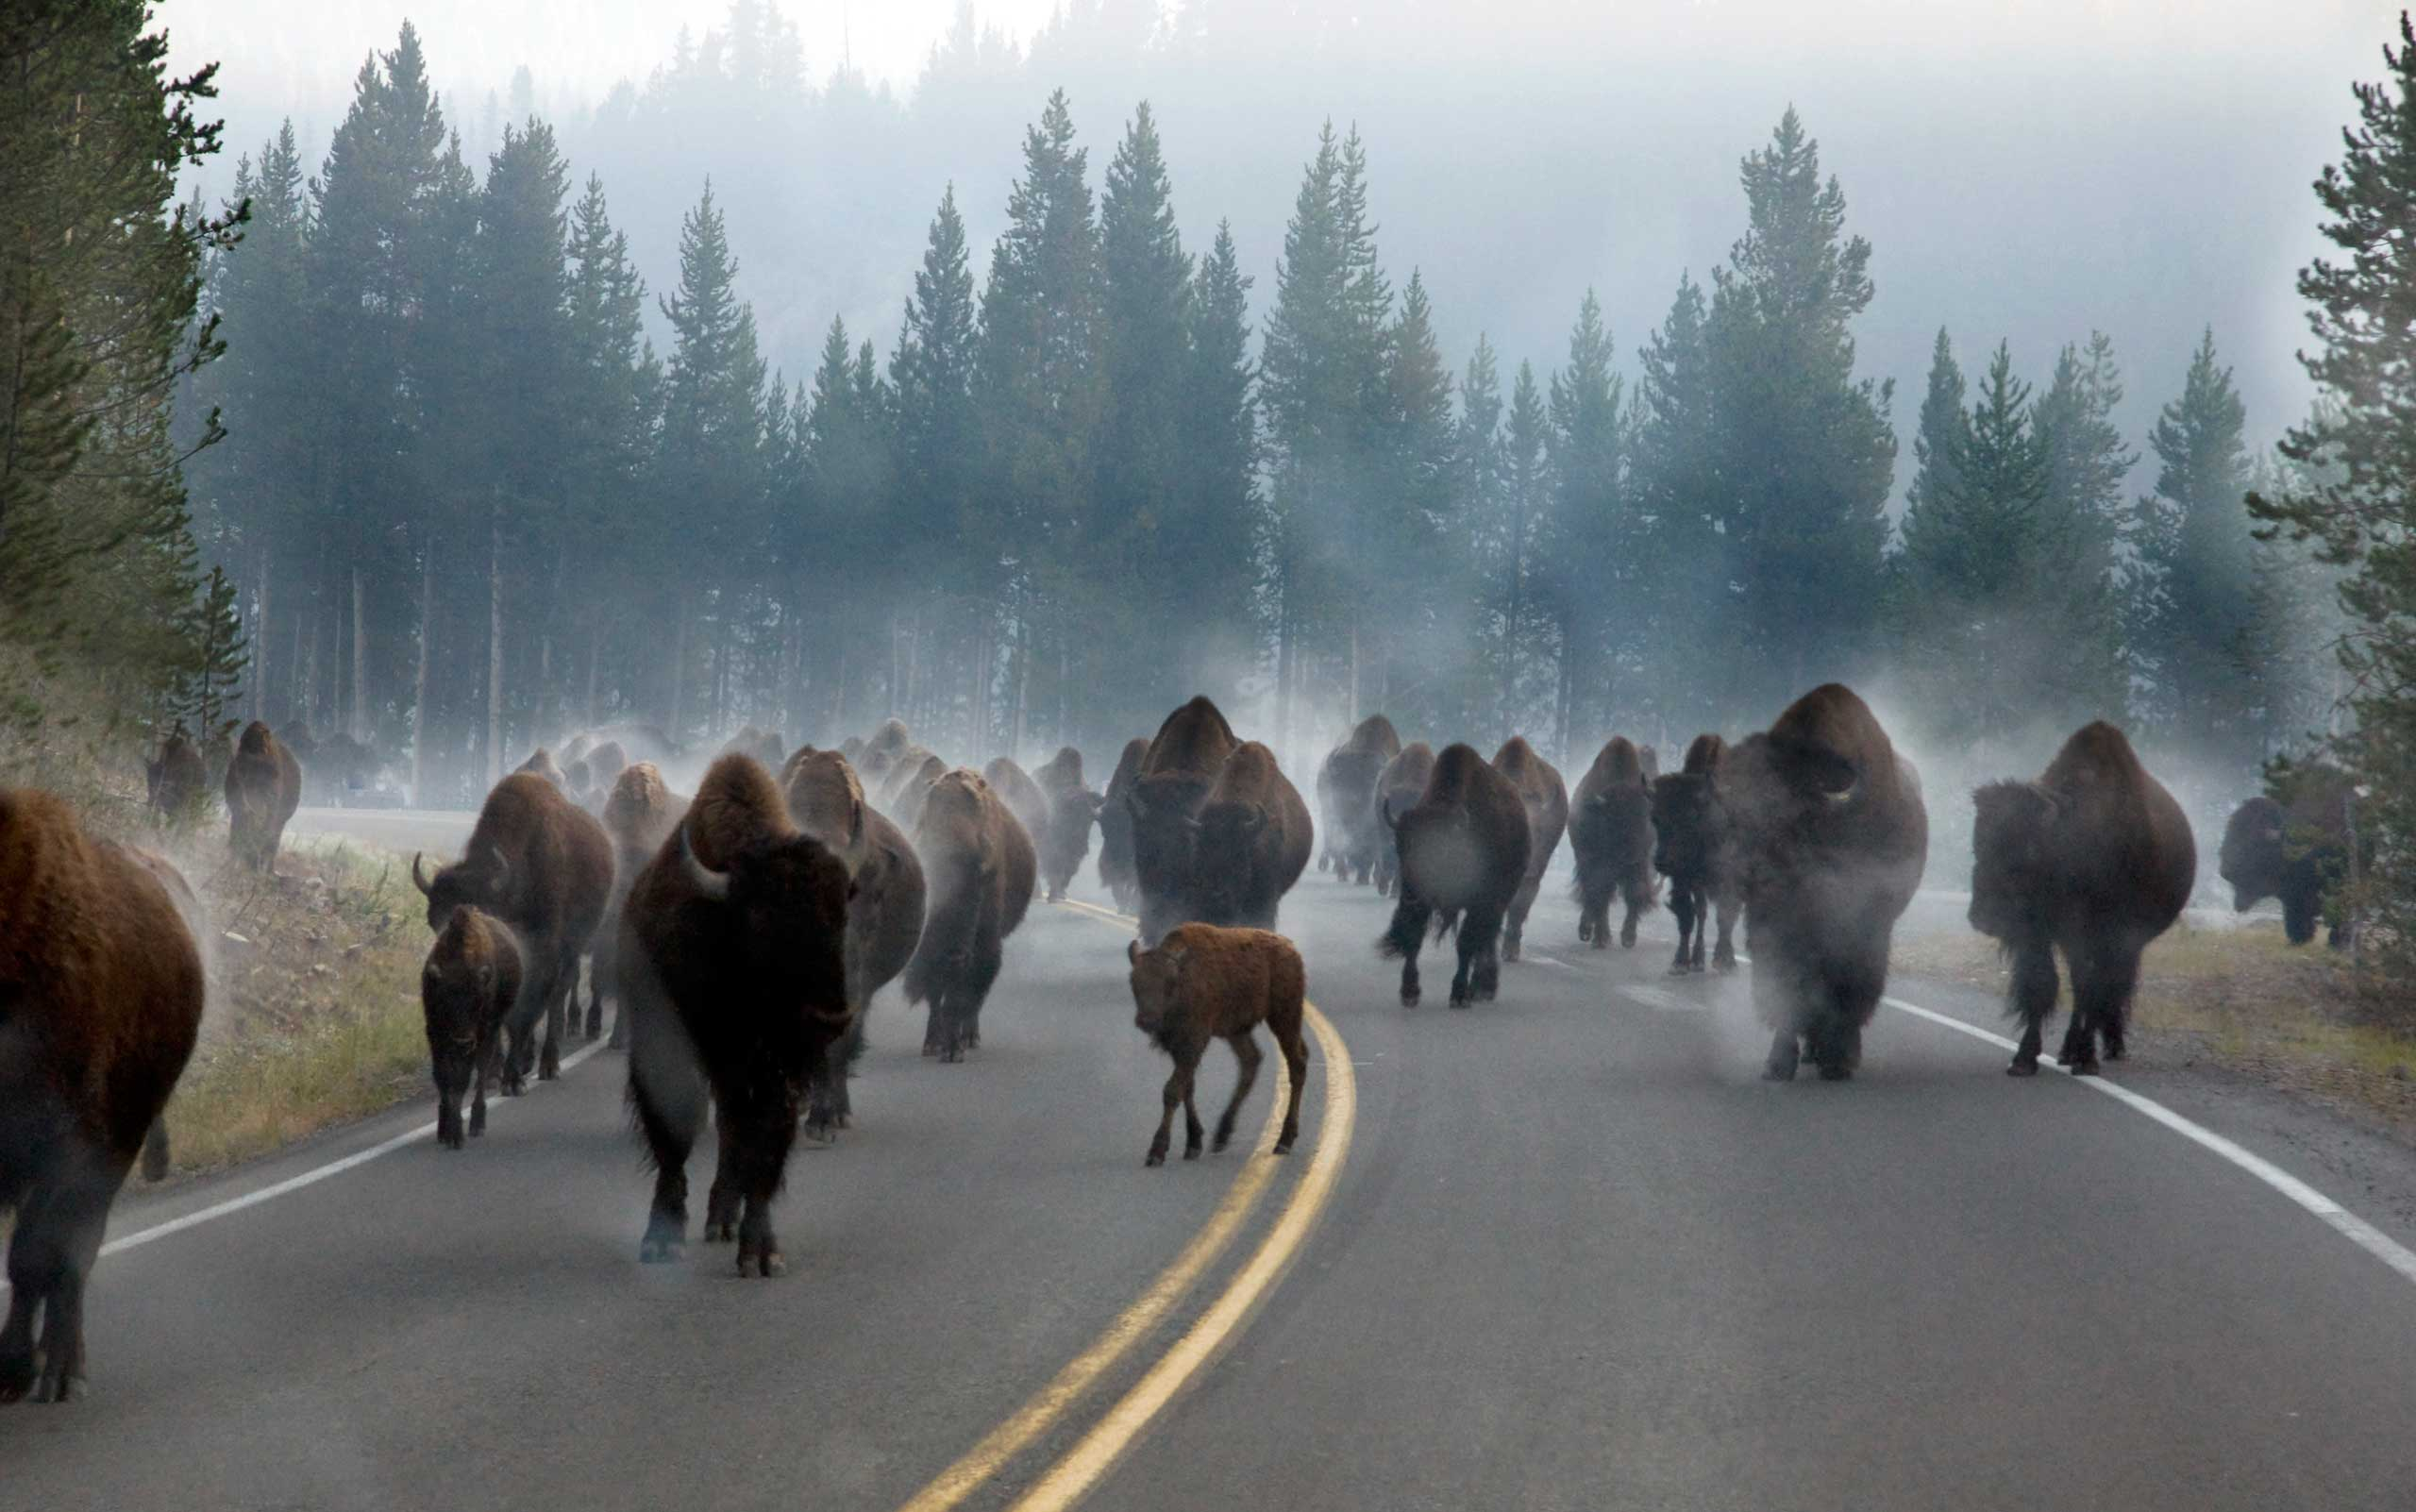 The morning commute is a little different at Yellowstone National Park. Cameron Patrick captured this photo on a cold morning -- just after the bison herd had waded through a river along the side the road. The bisons' body heat caused the water to turn to steam in the cold air, creating mist around the bison.